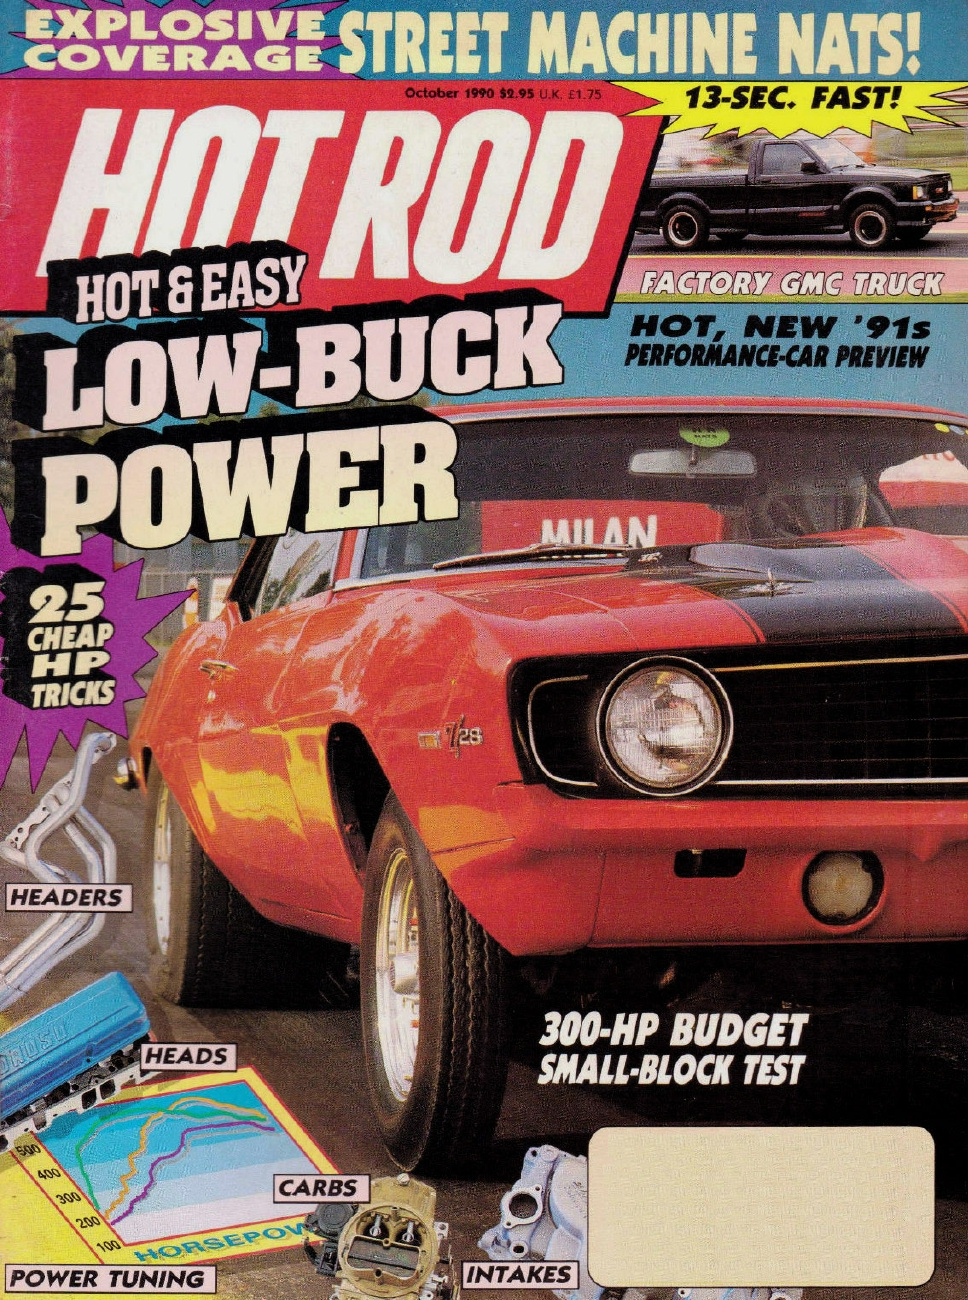 HOT ROD 1990 OCT - SYCLONE, NASH, REHER-MORRISON* - 1990-1999 - JIM'S MEGA  MAGAZINES